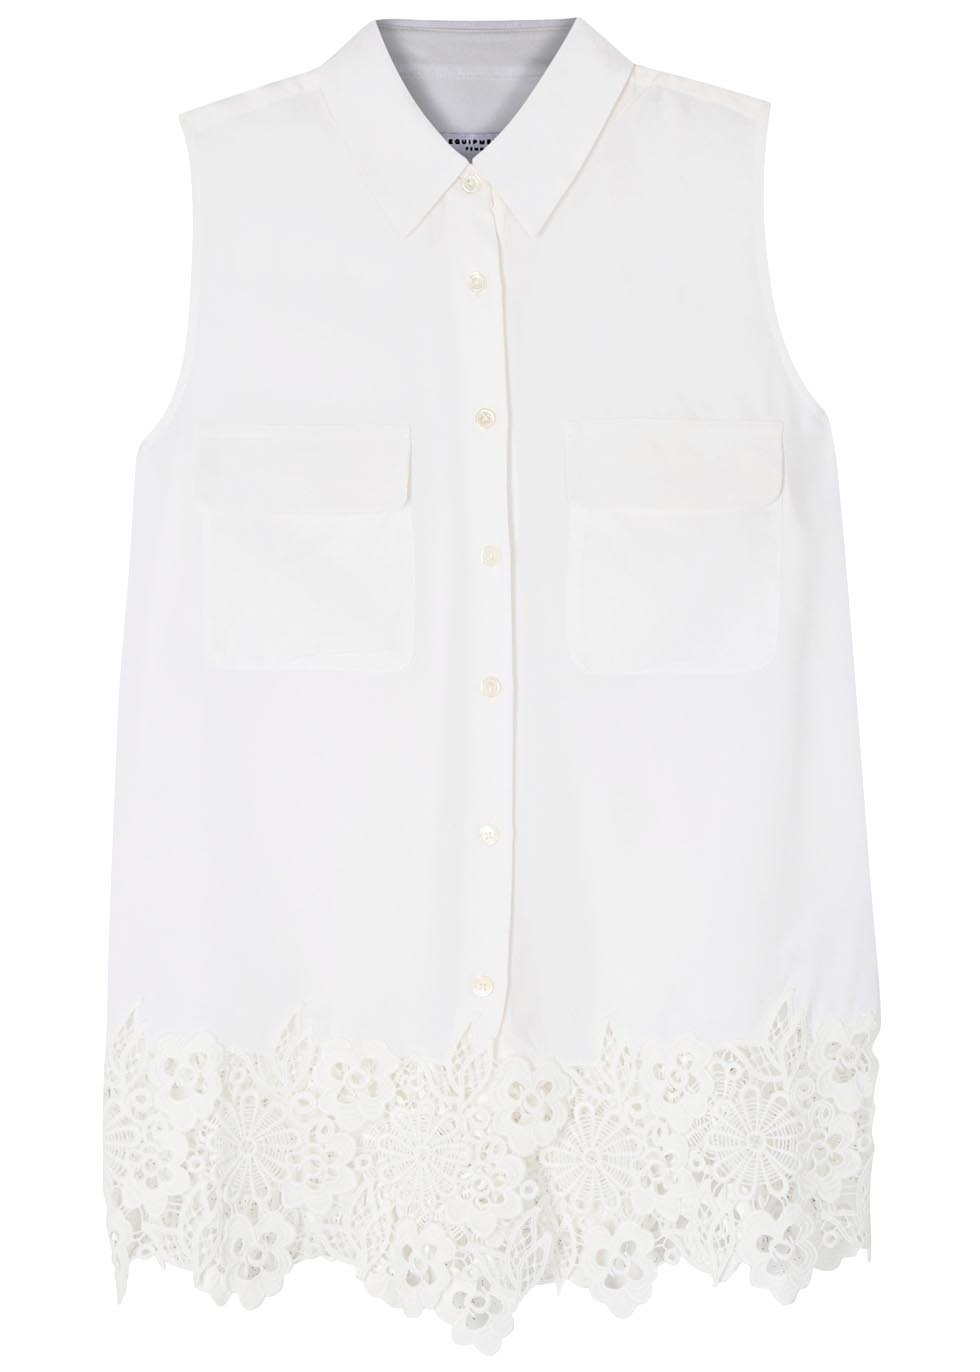 Signature White Lace Trimmed Silk Shirt - neckline: shirt collar/peter pan/zip with opening; pattern: plain; sleeve style: sleeveless; style: shirt; predominant colour: white; occasions: casual; length: standard; fibres: silk - 100%; fit: body skimming; sleeve length: sleeveless; texture group: silky - light; pattern type: fabric; embellishment: lace; season: s/s 2016; wardrobe: highlight